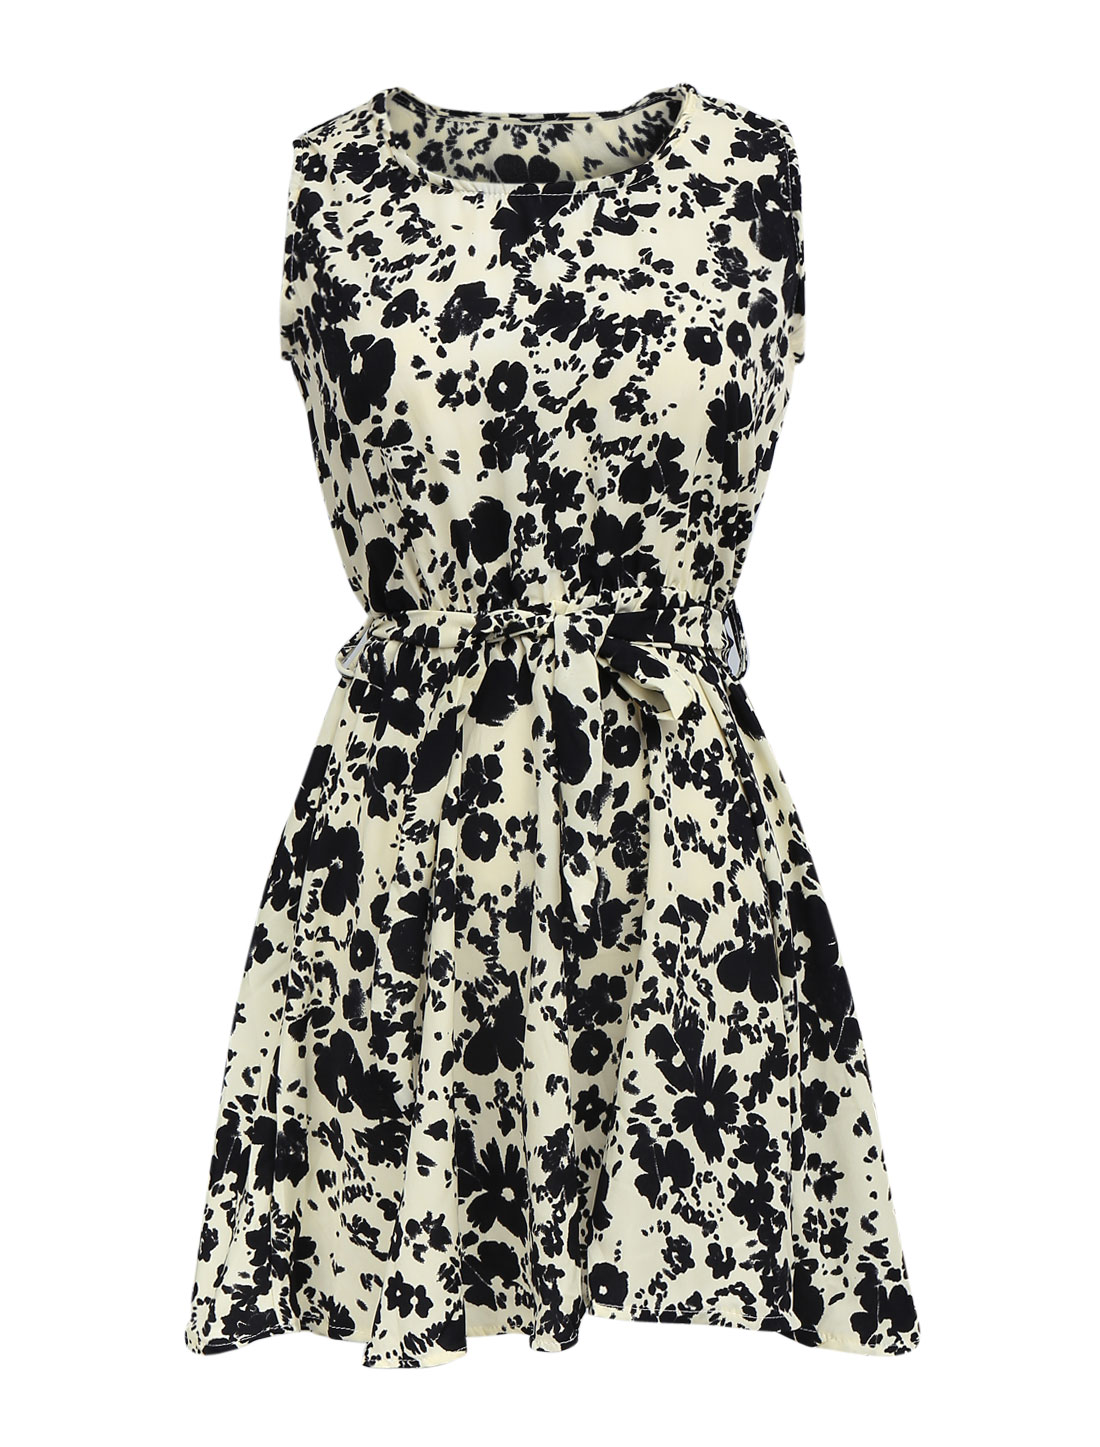 Lady Elastic Waist Floral Prints Belt Loop Dress Beige XS